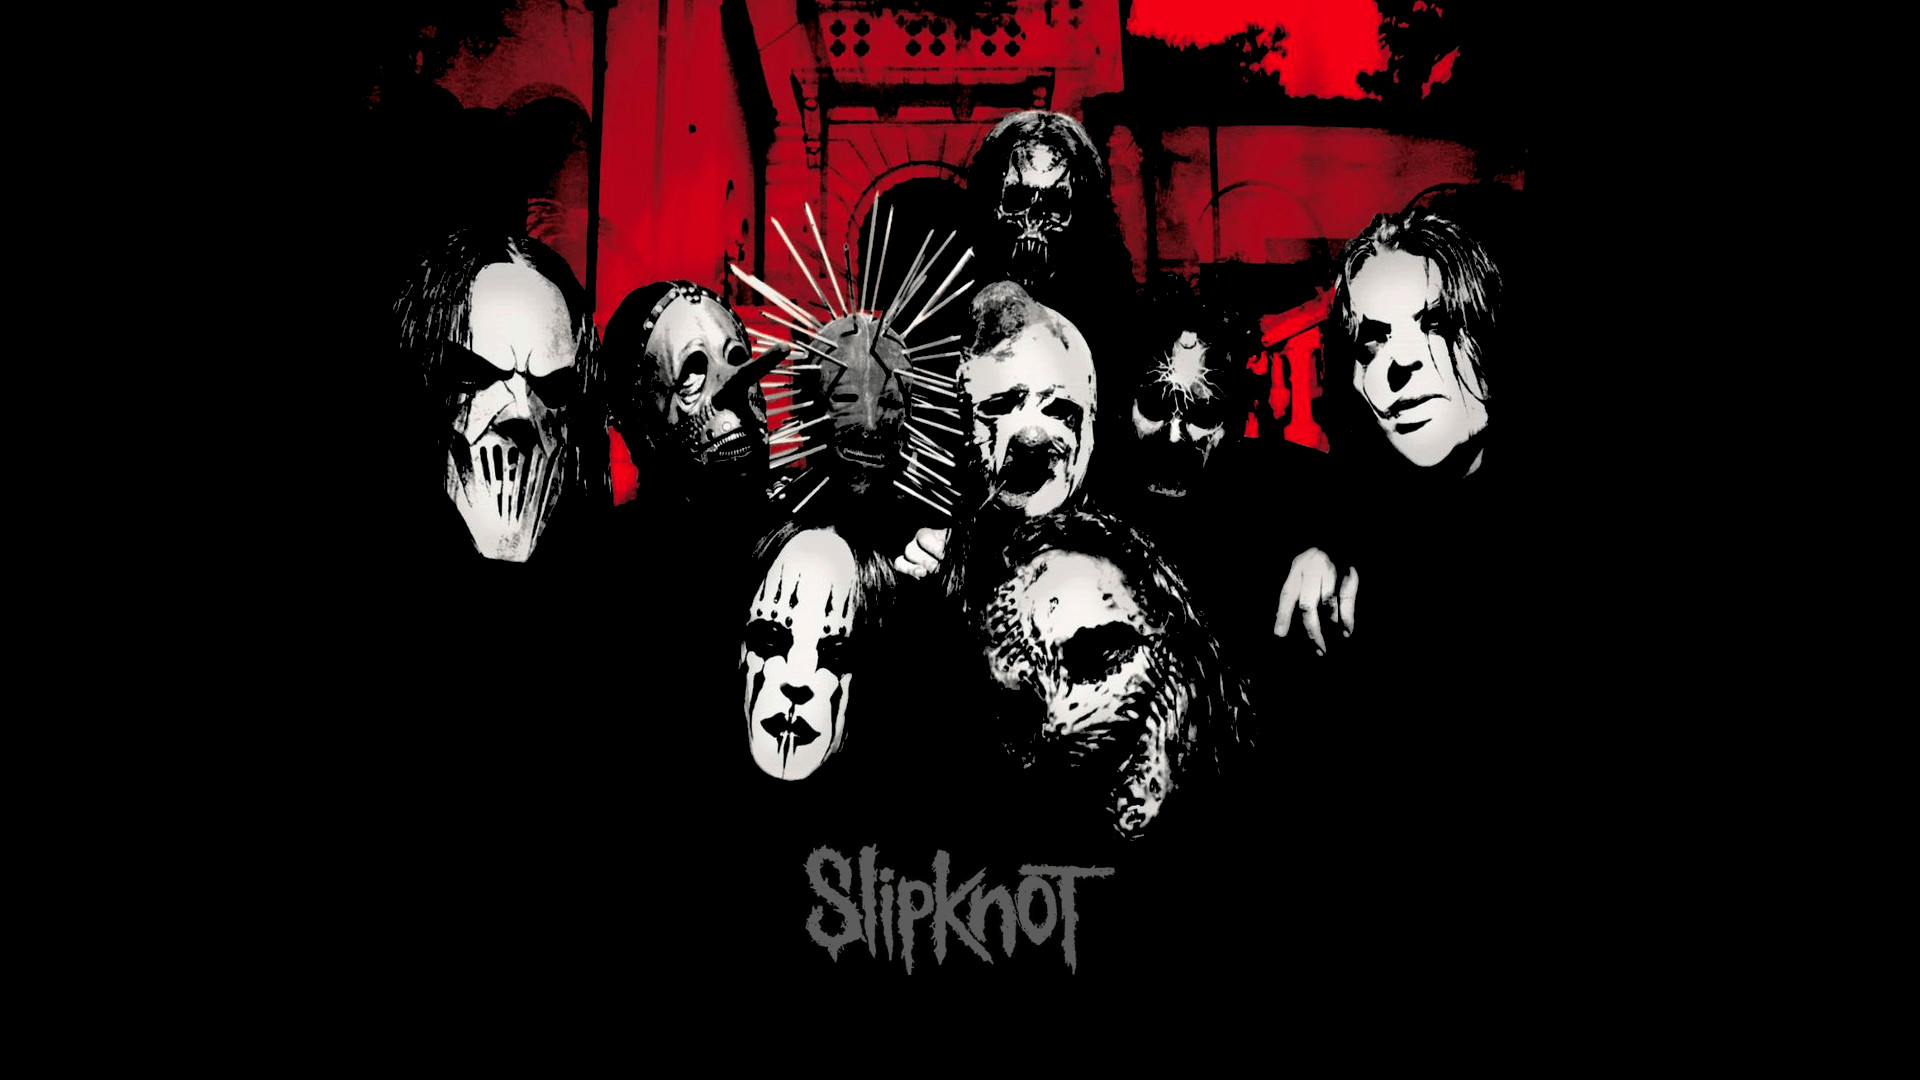 Hd Wallpapers For Windows 7 Download Slipknot Wallpaper 2018 60 Images